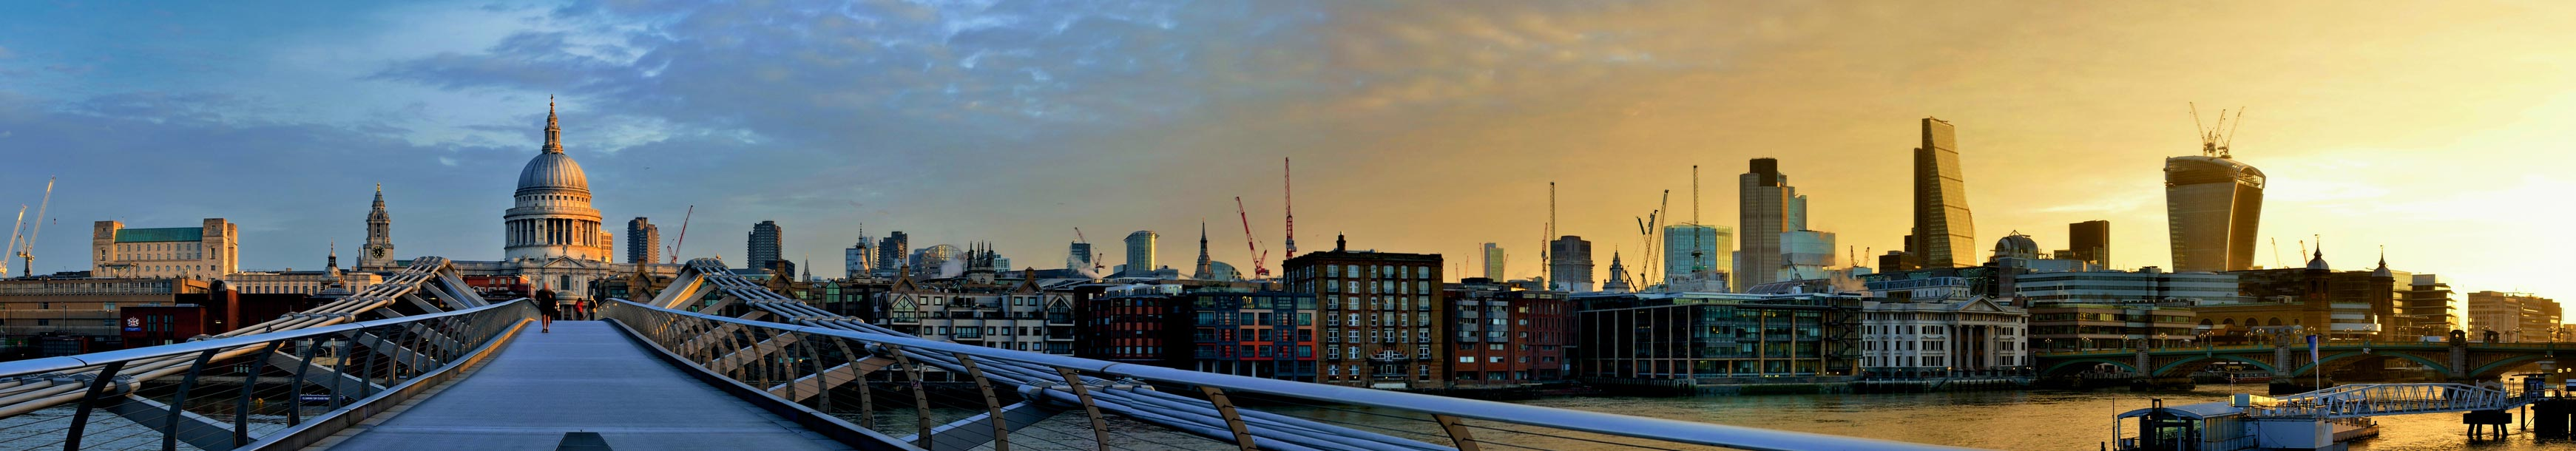 The London skyline at Millennium Bridge